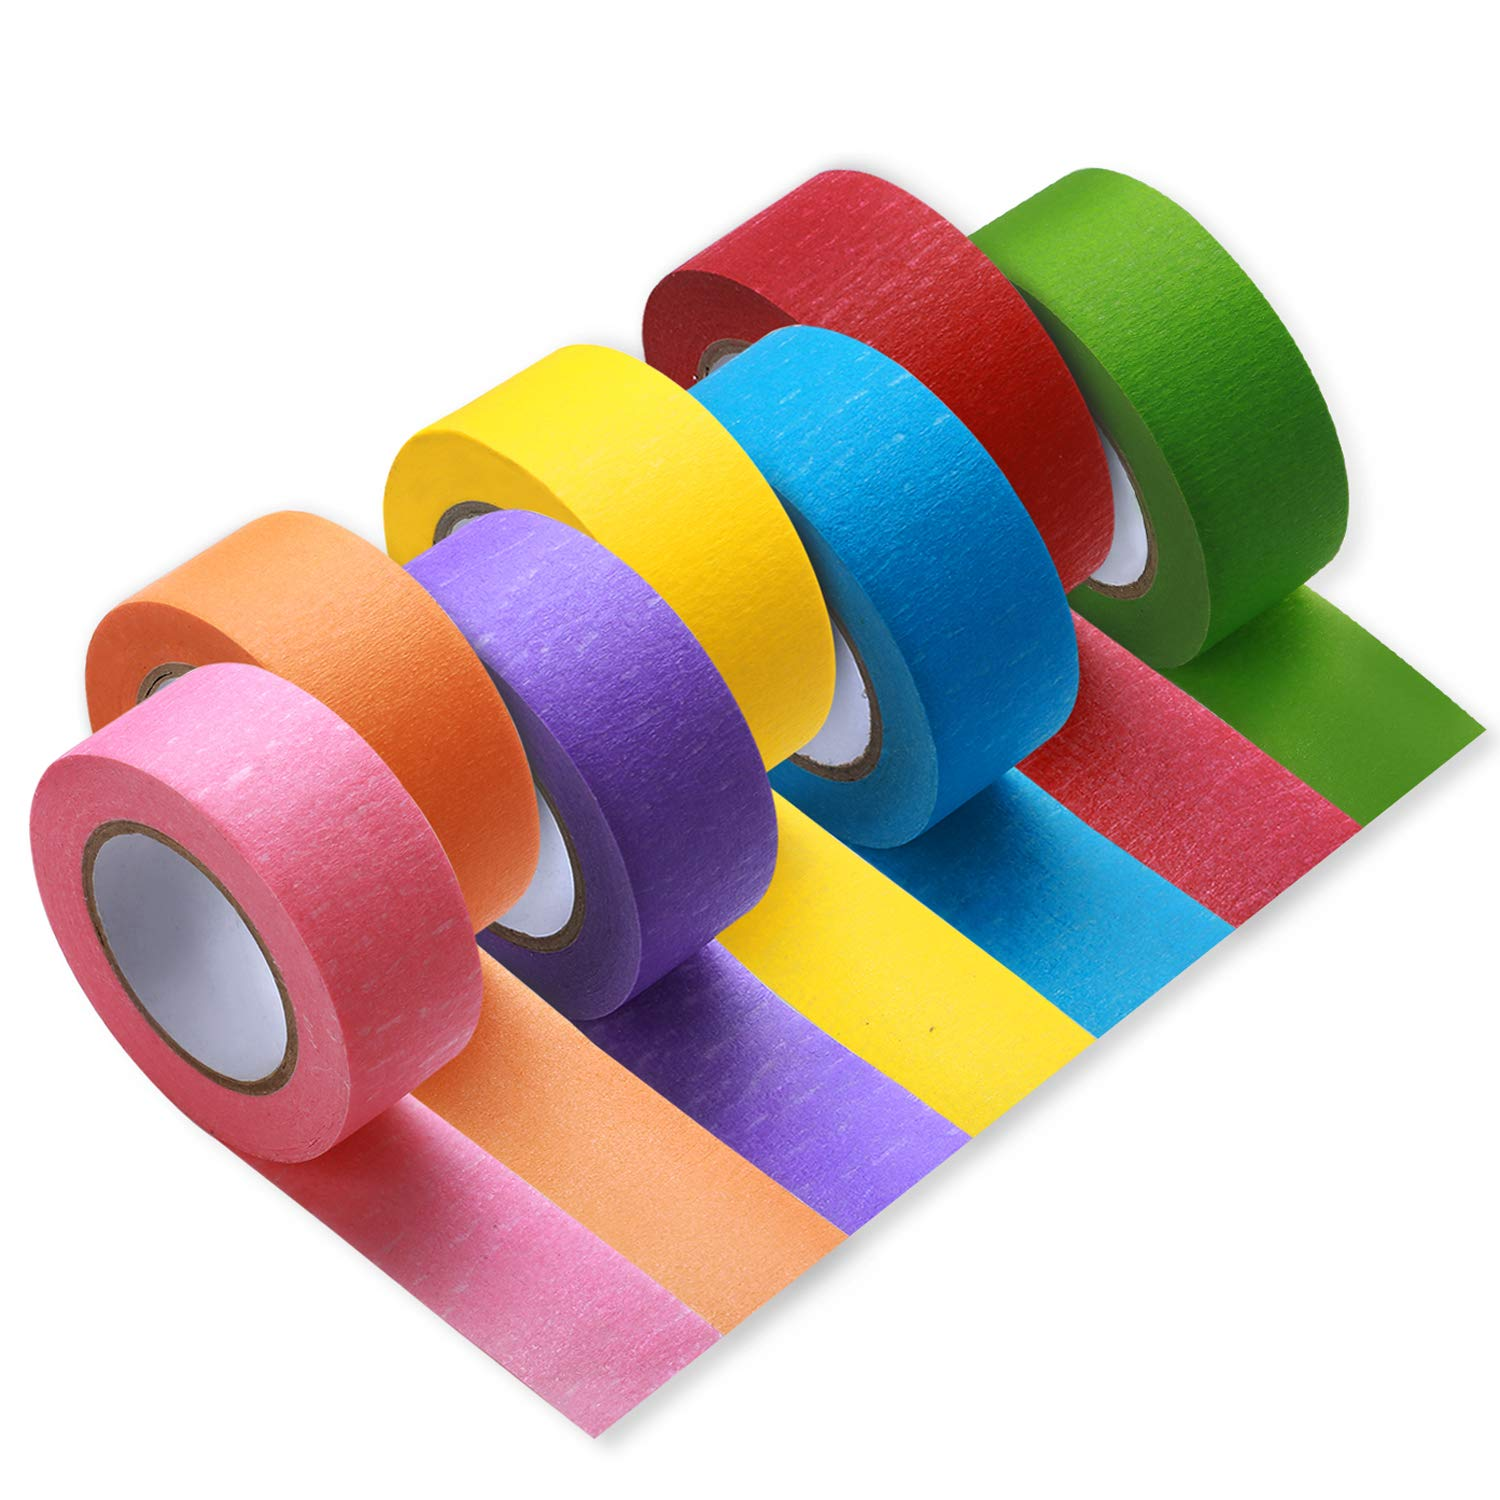 Colored Masking Painters Crafts 1 inch 7 Rolls Colorful Decorative Wide DIY Masking Tape Adhesive School Party Supplies Bright Colors Great for Arts & Craft Projects Fun for Kids & Adults